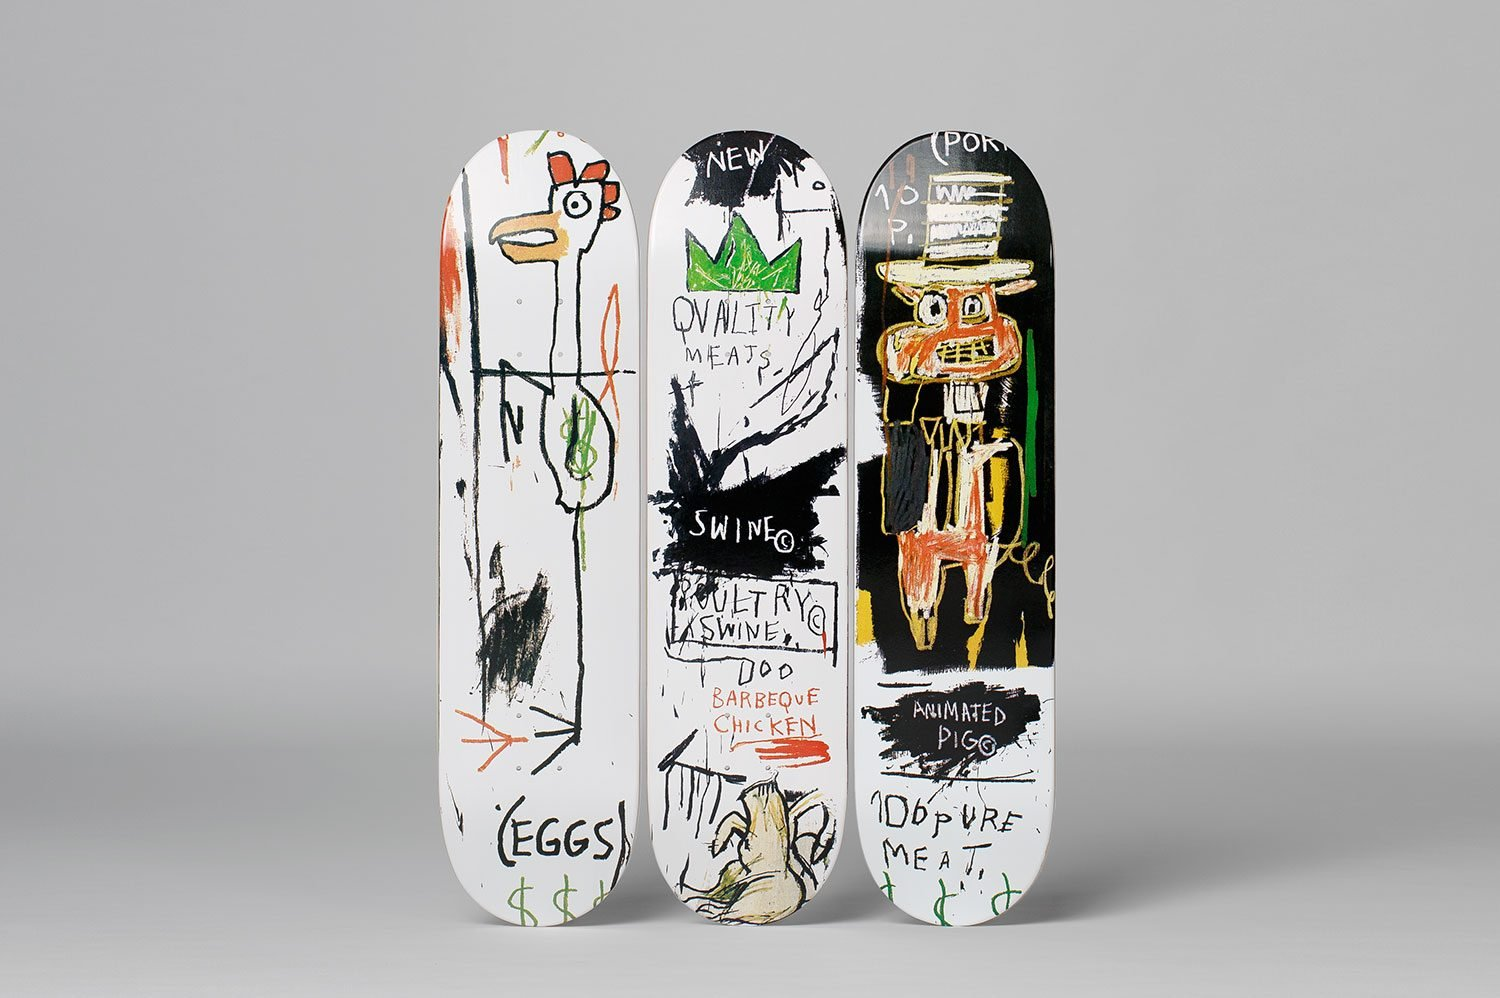 Jean-Michel Basquiat: Skateboard Triptych Quality Meats for the Public